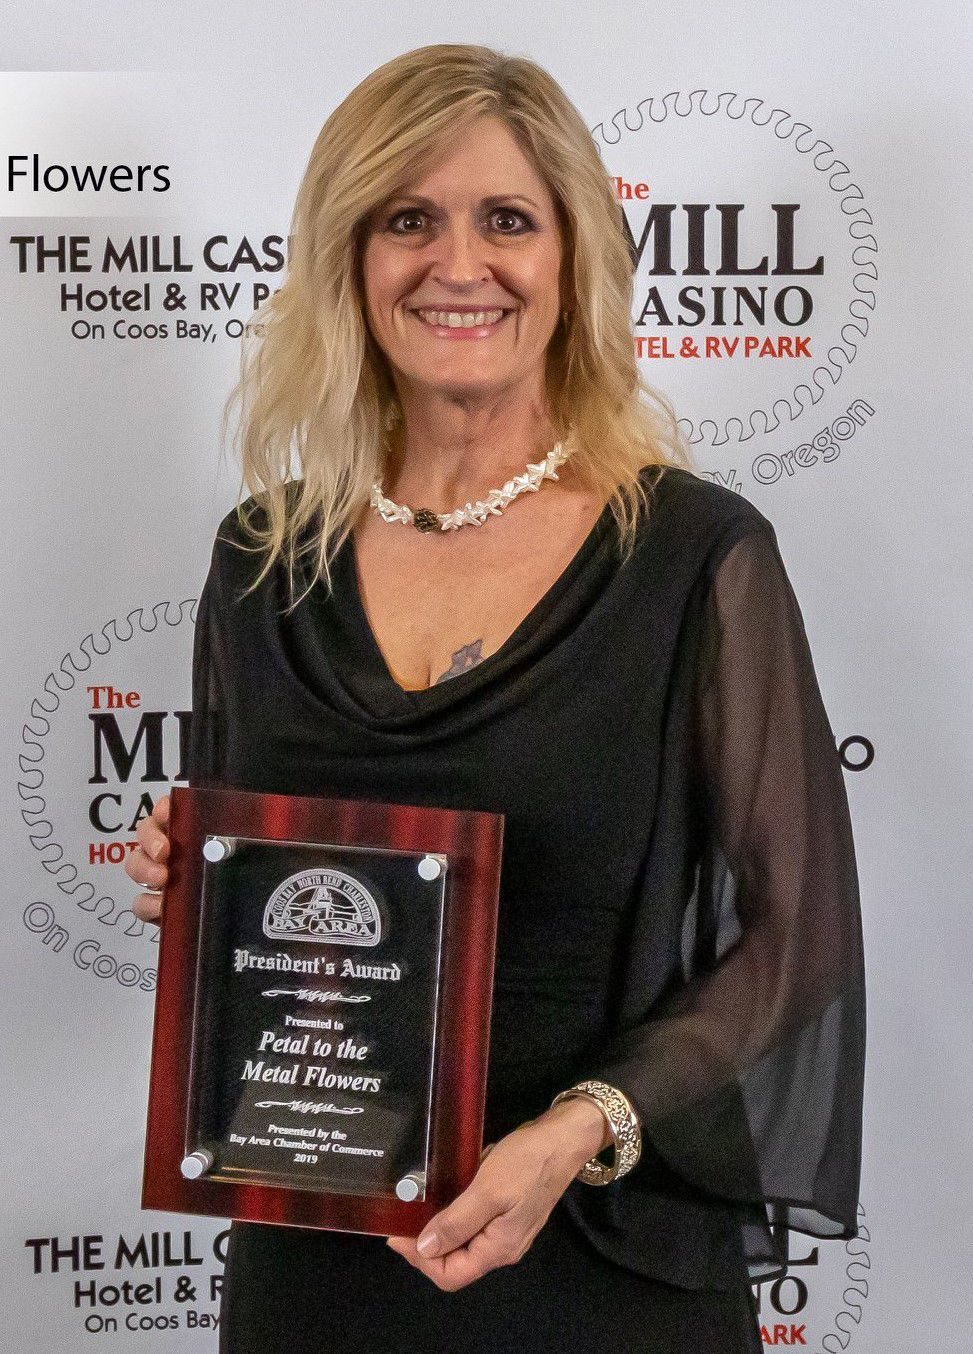 Bay Area Chamber of Commerce awards 2019 - President's Award - Petal to the Metal Flowers